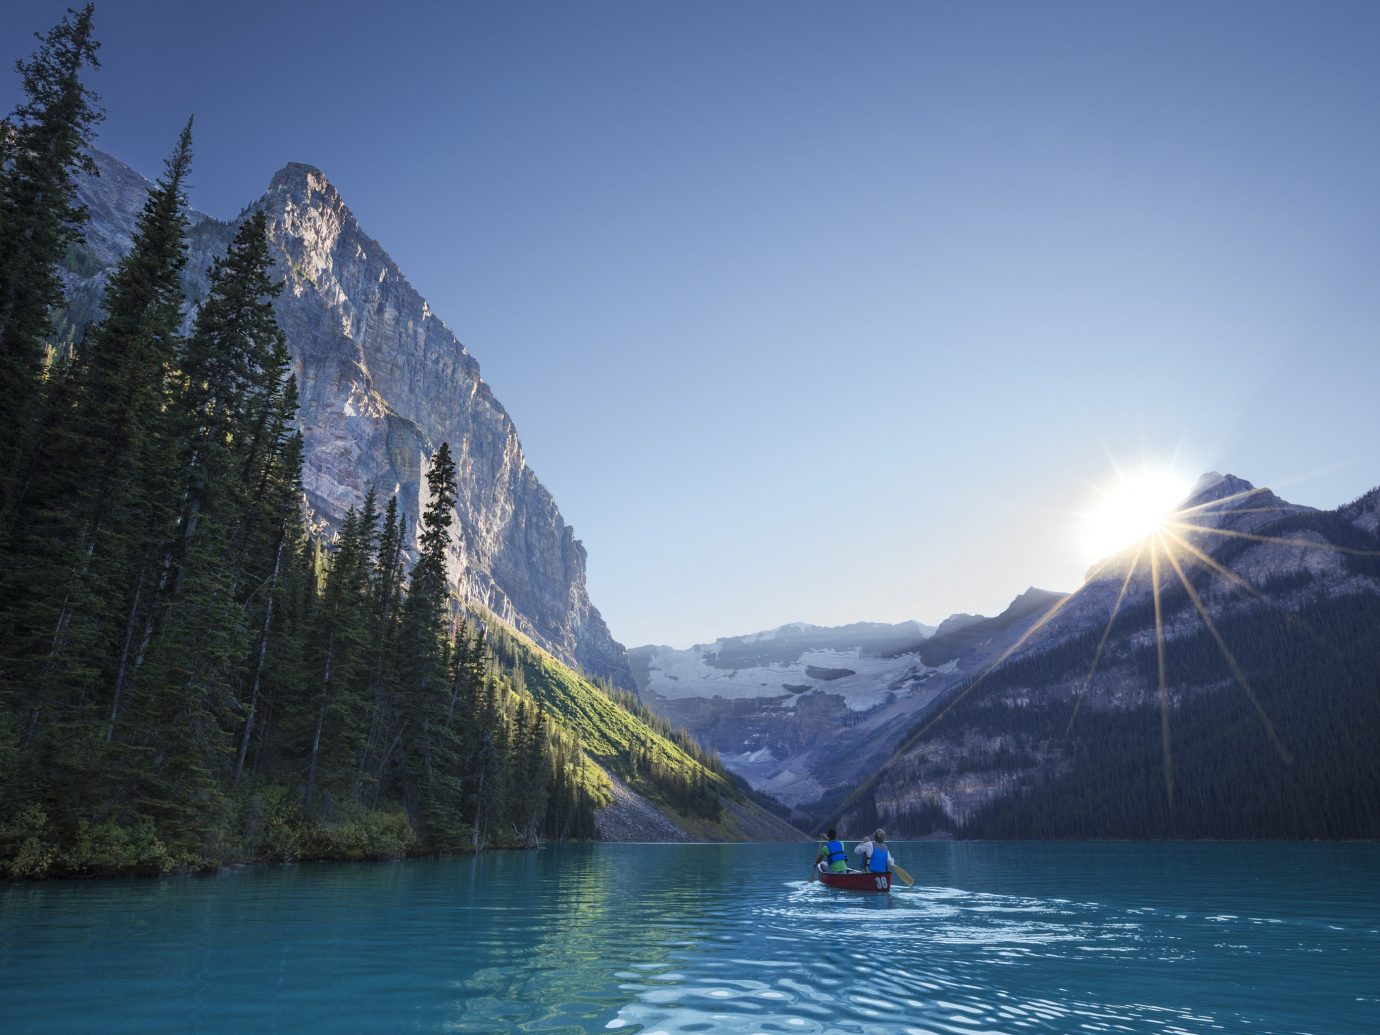 Adventure Trip Ideas outdoor water sky mountain mountainous landforms landform geographical feature Nature Boat wilderness mountain range fjord vehicle Lake boating alps glacial landform reflection surrounded distance